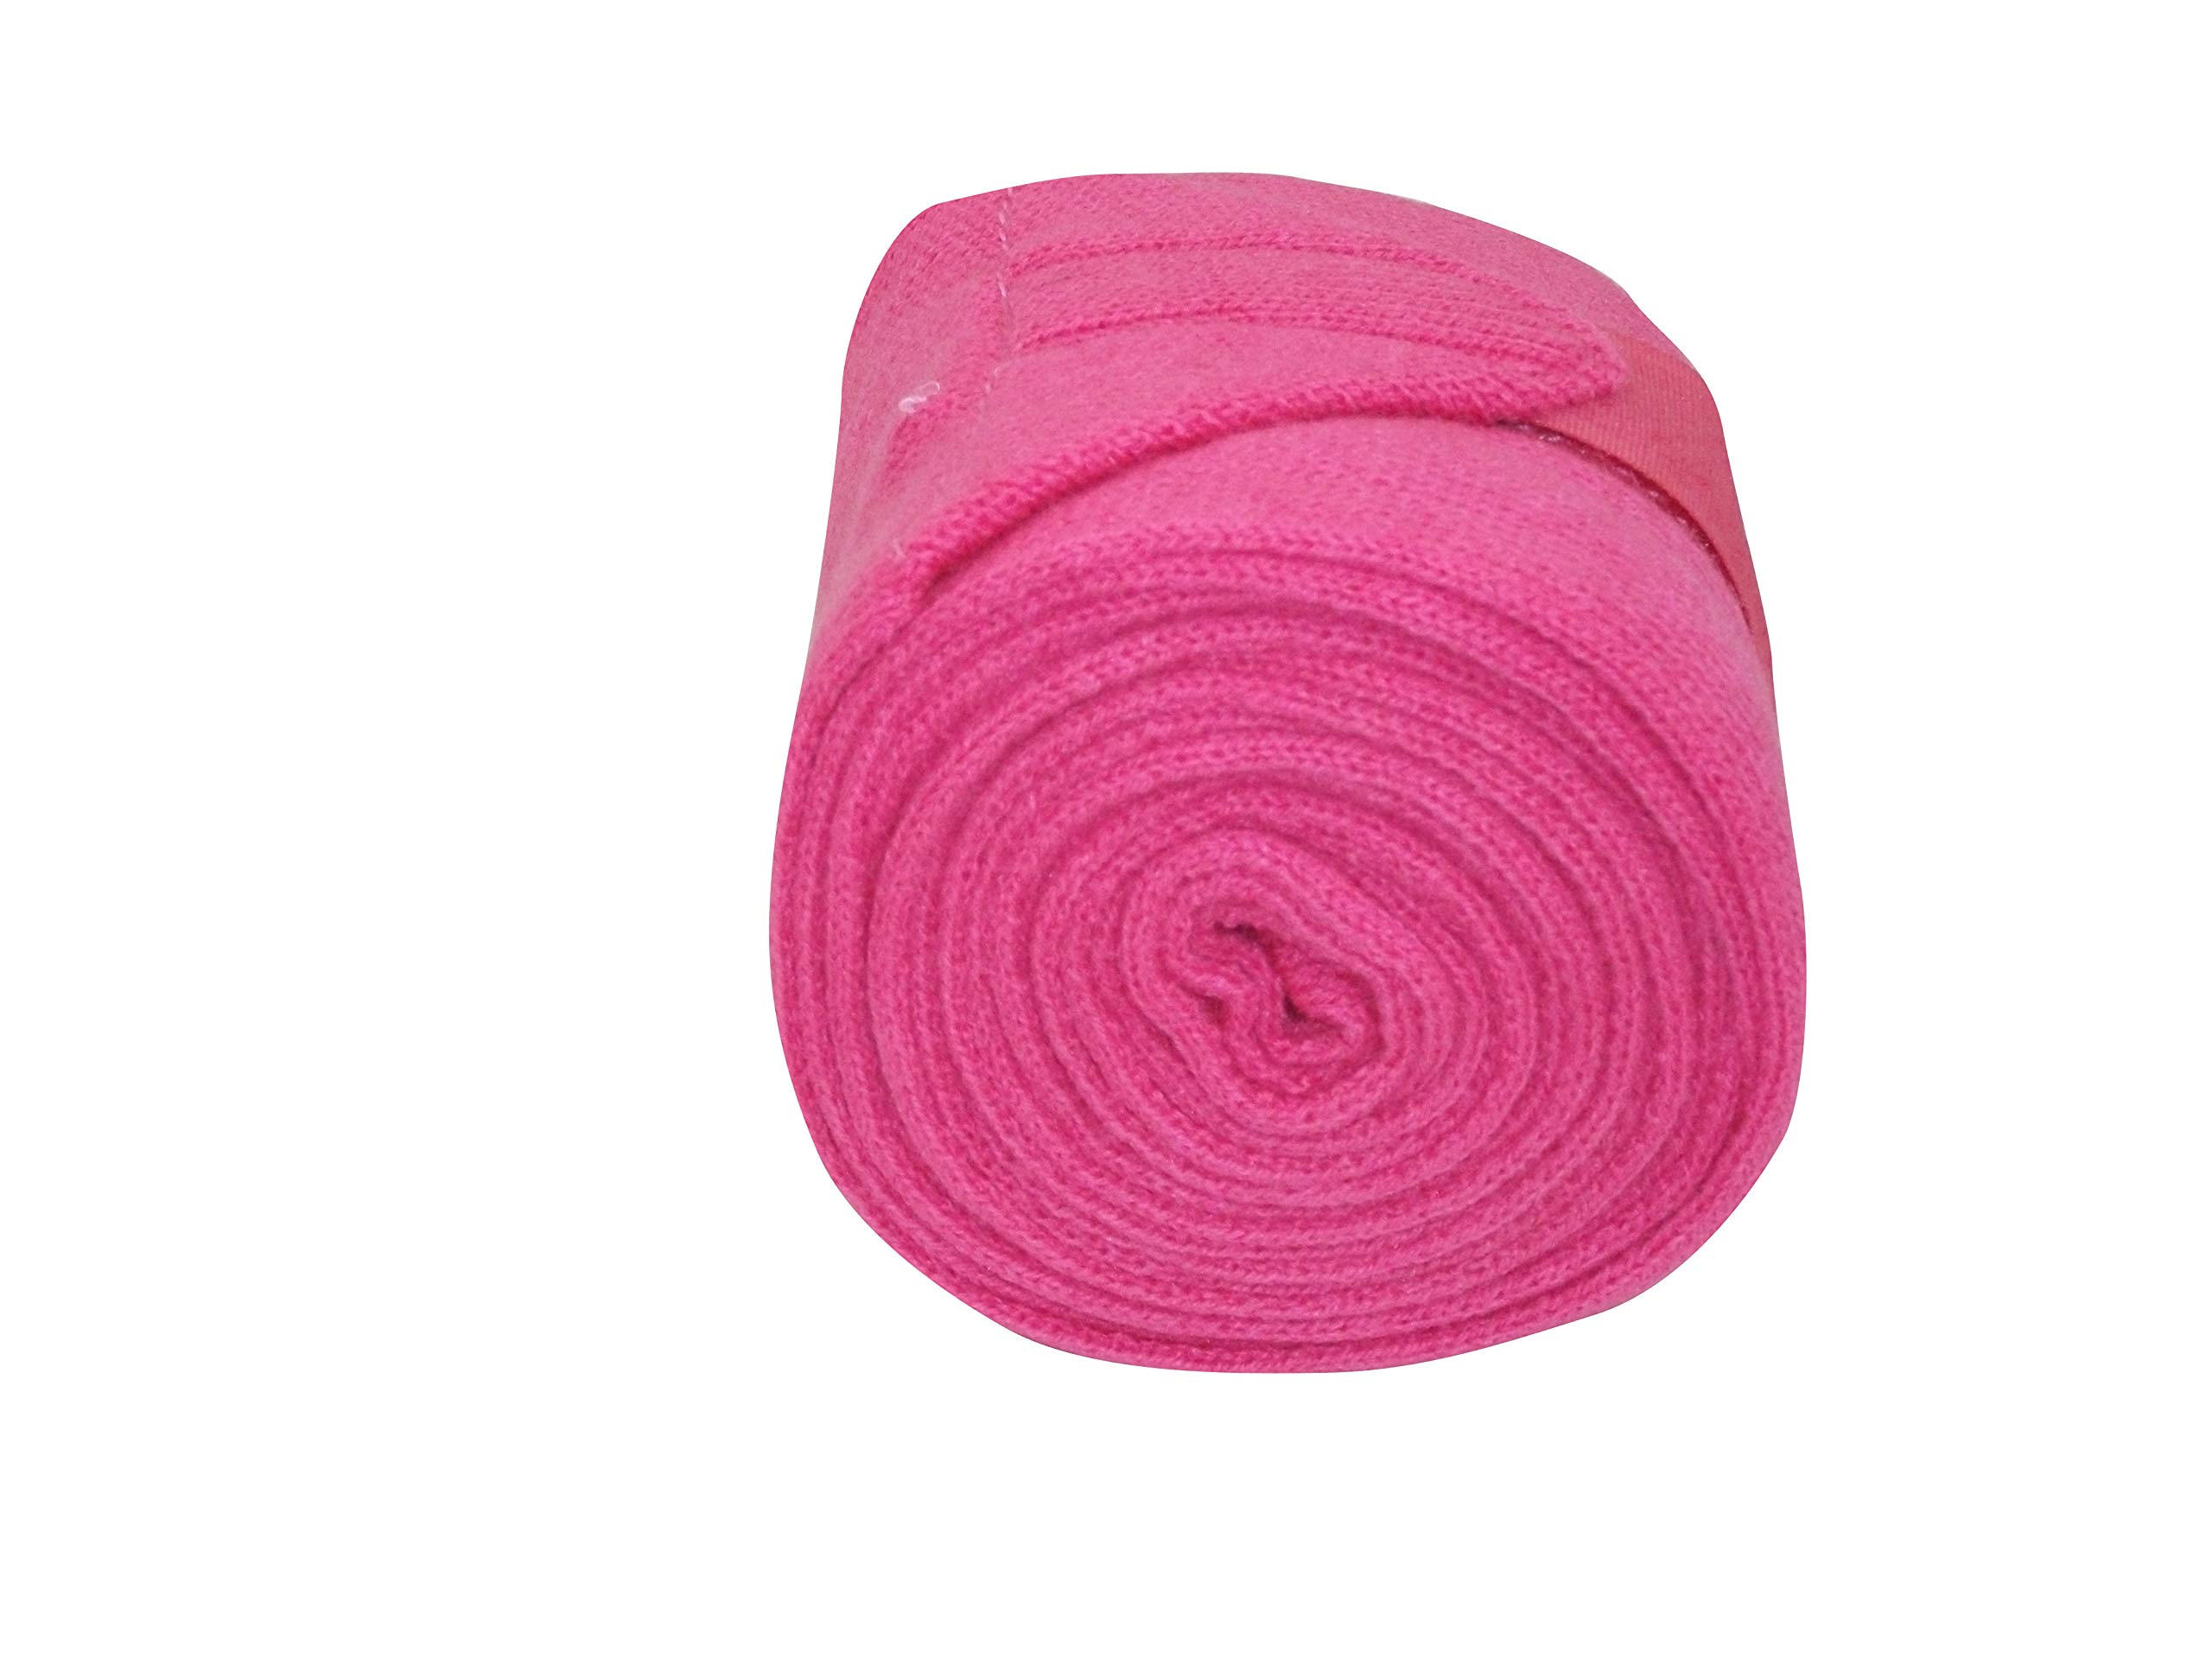 Protack Stable/travel Bandage Knitted : Pink